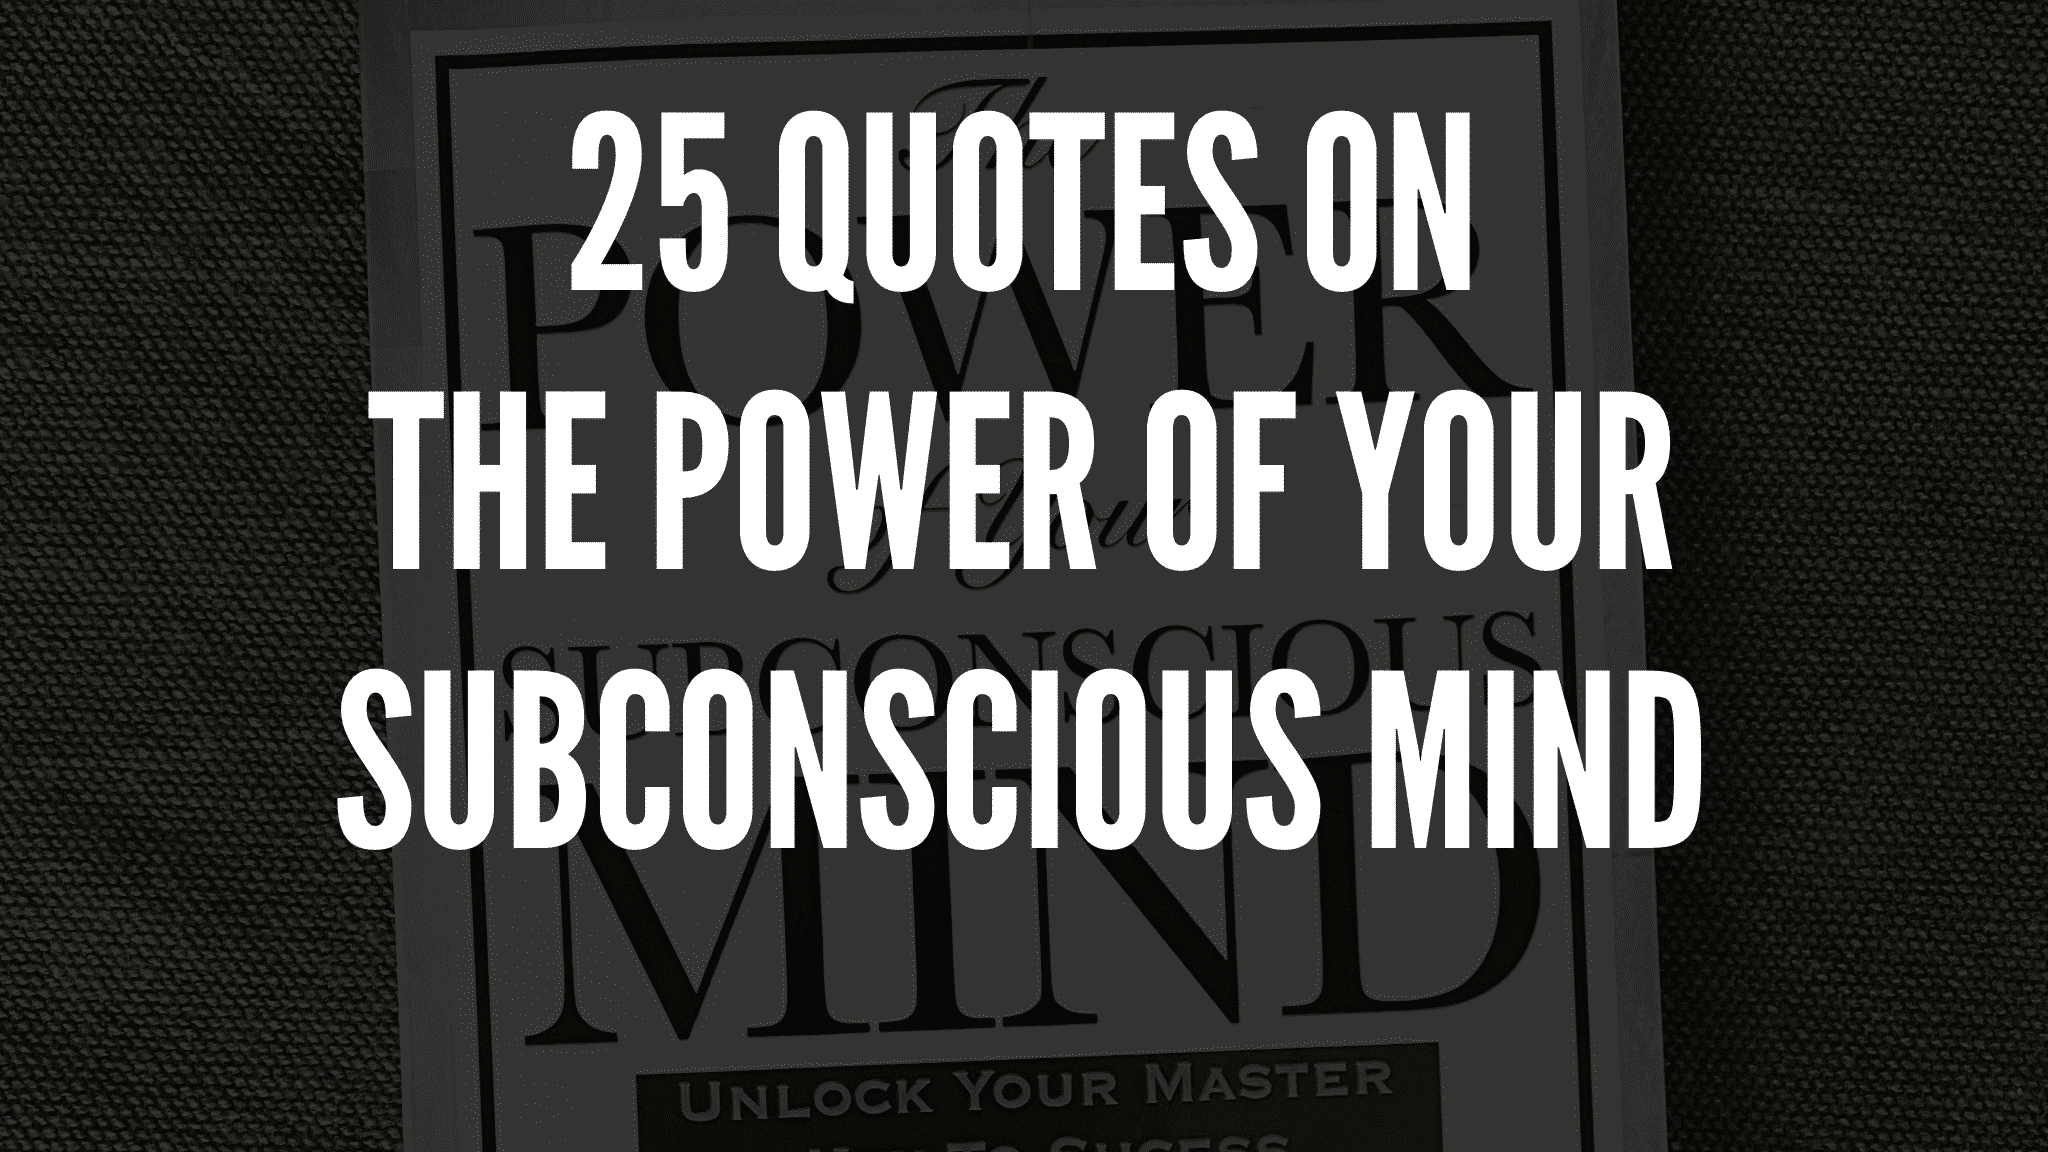 25 Quotes On The Power Of Your Subconscious Mind